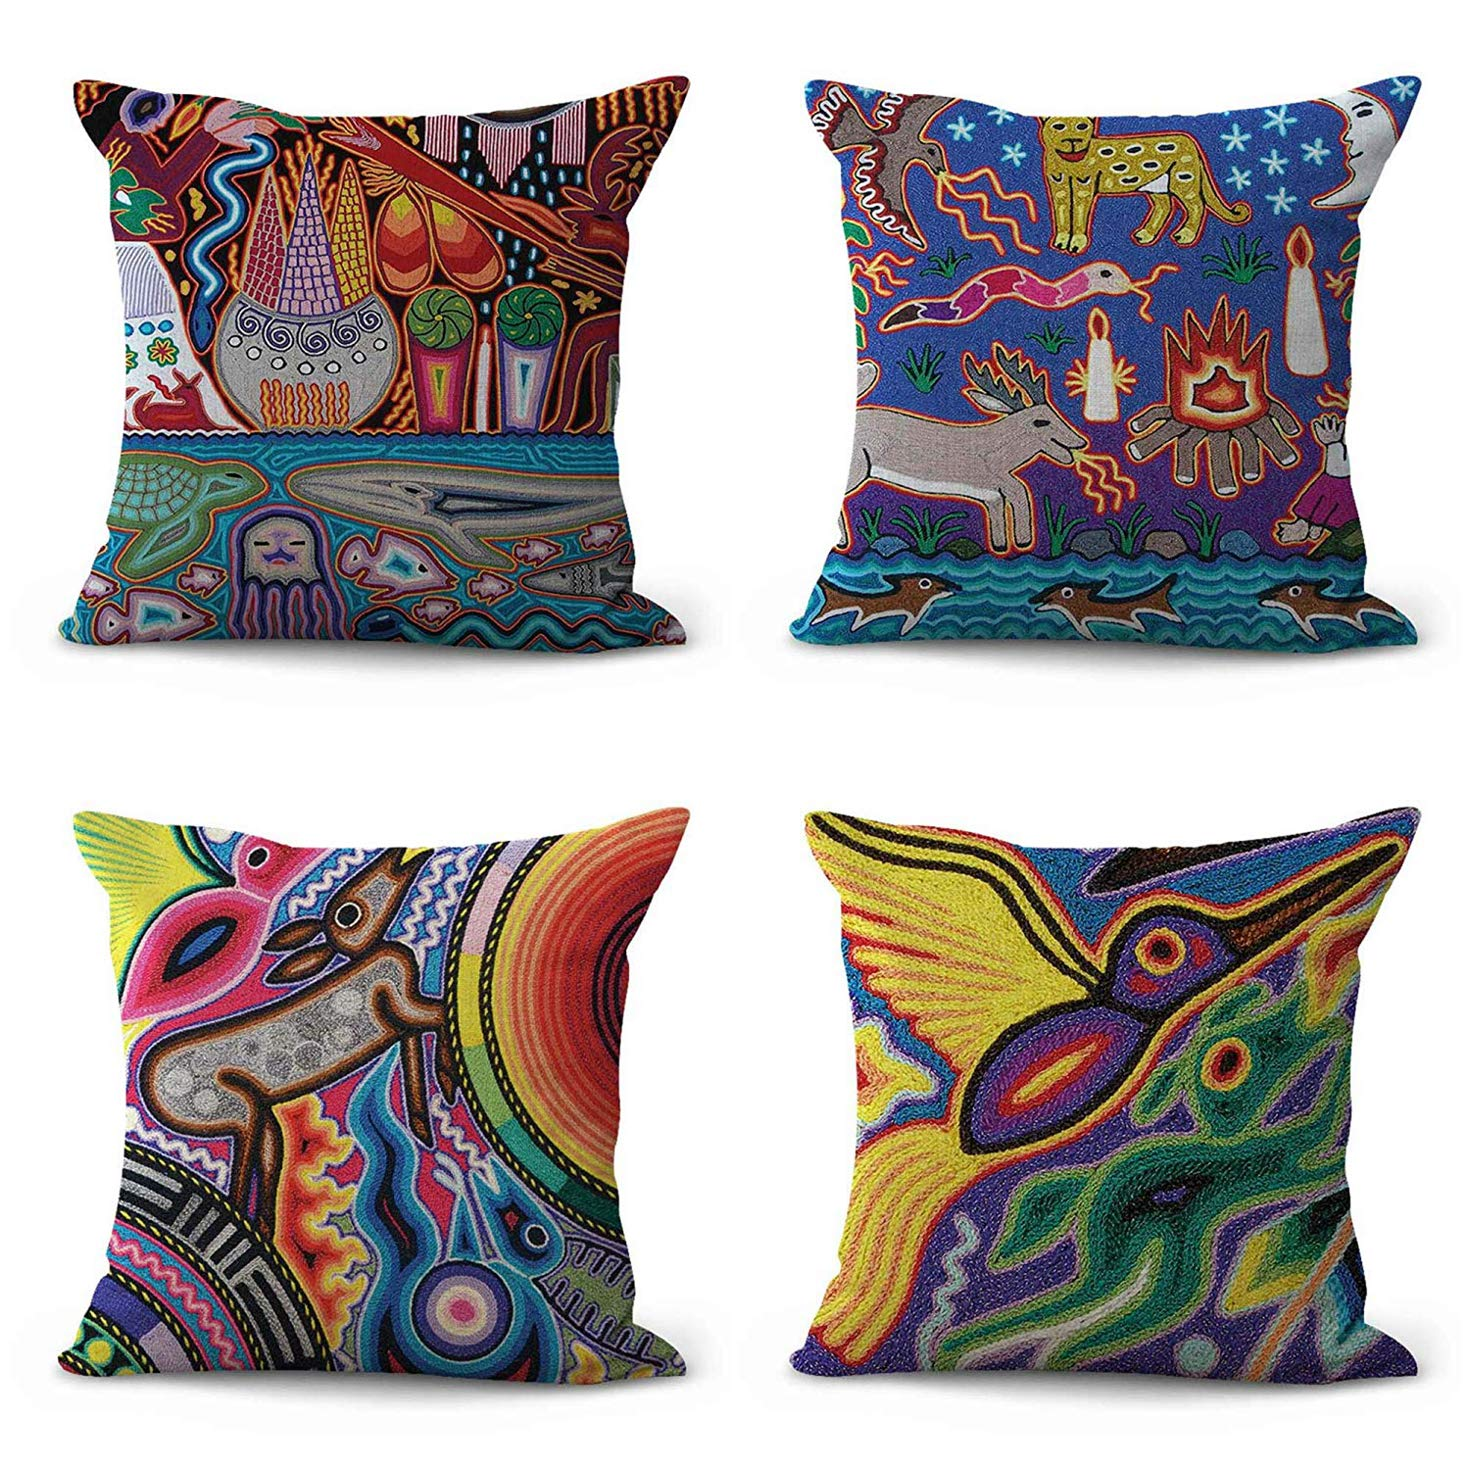 "Semtomn Set of 4 Linen Throw Pillow Covers Folk Indigenous Mexican Wholesale Retro Colorful Abstract Animal Home Decorative 20""x20"" Flax Pillow Cases Cushion Square Pillowcases"